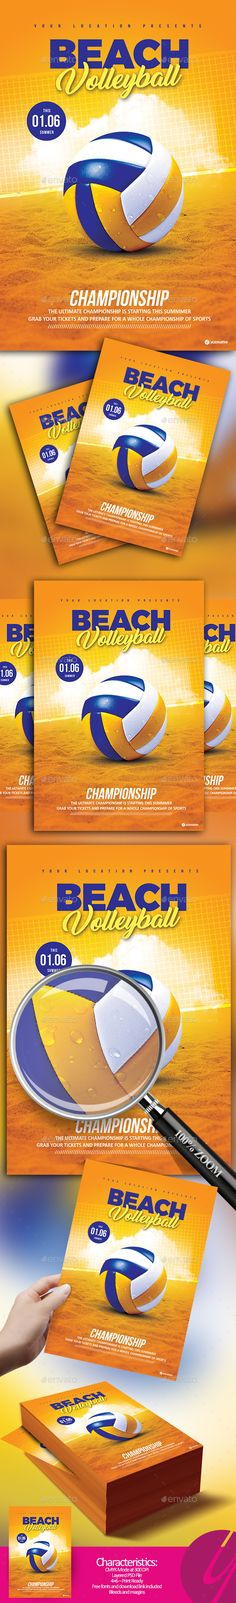 Sport Event Promo Flyer - flyer samples for an event